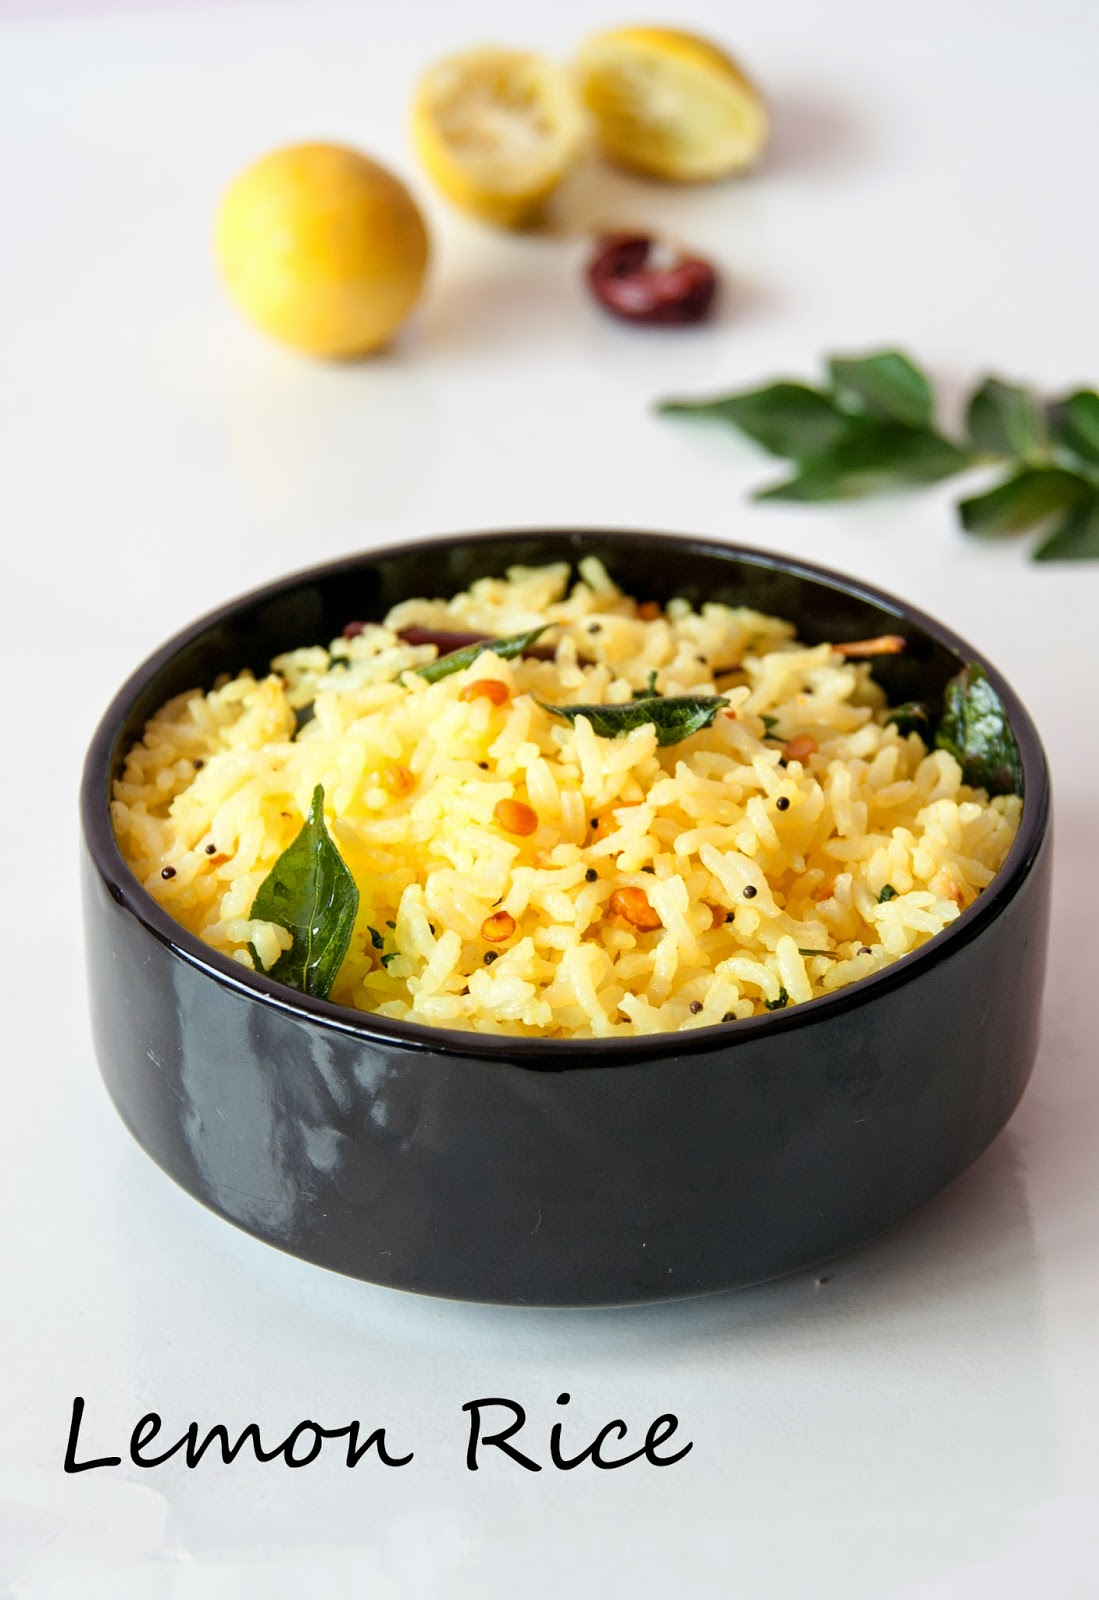 Lemon rice is one of the dishes Monsoon Kitchen will be preparing at Midtown Friday, May 20. Credit: Midtown Facebook page